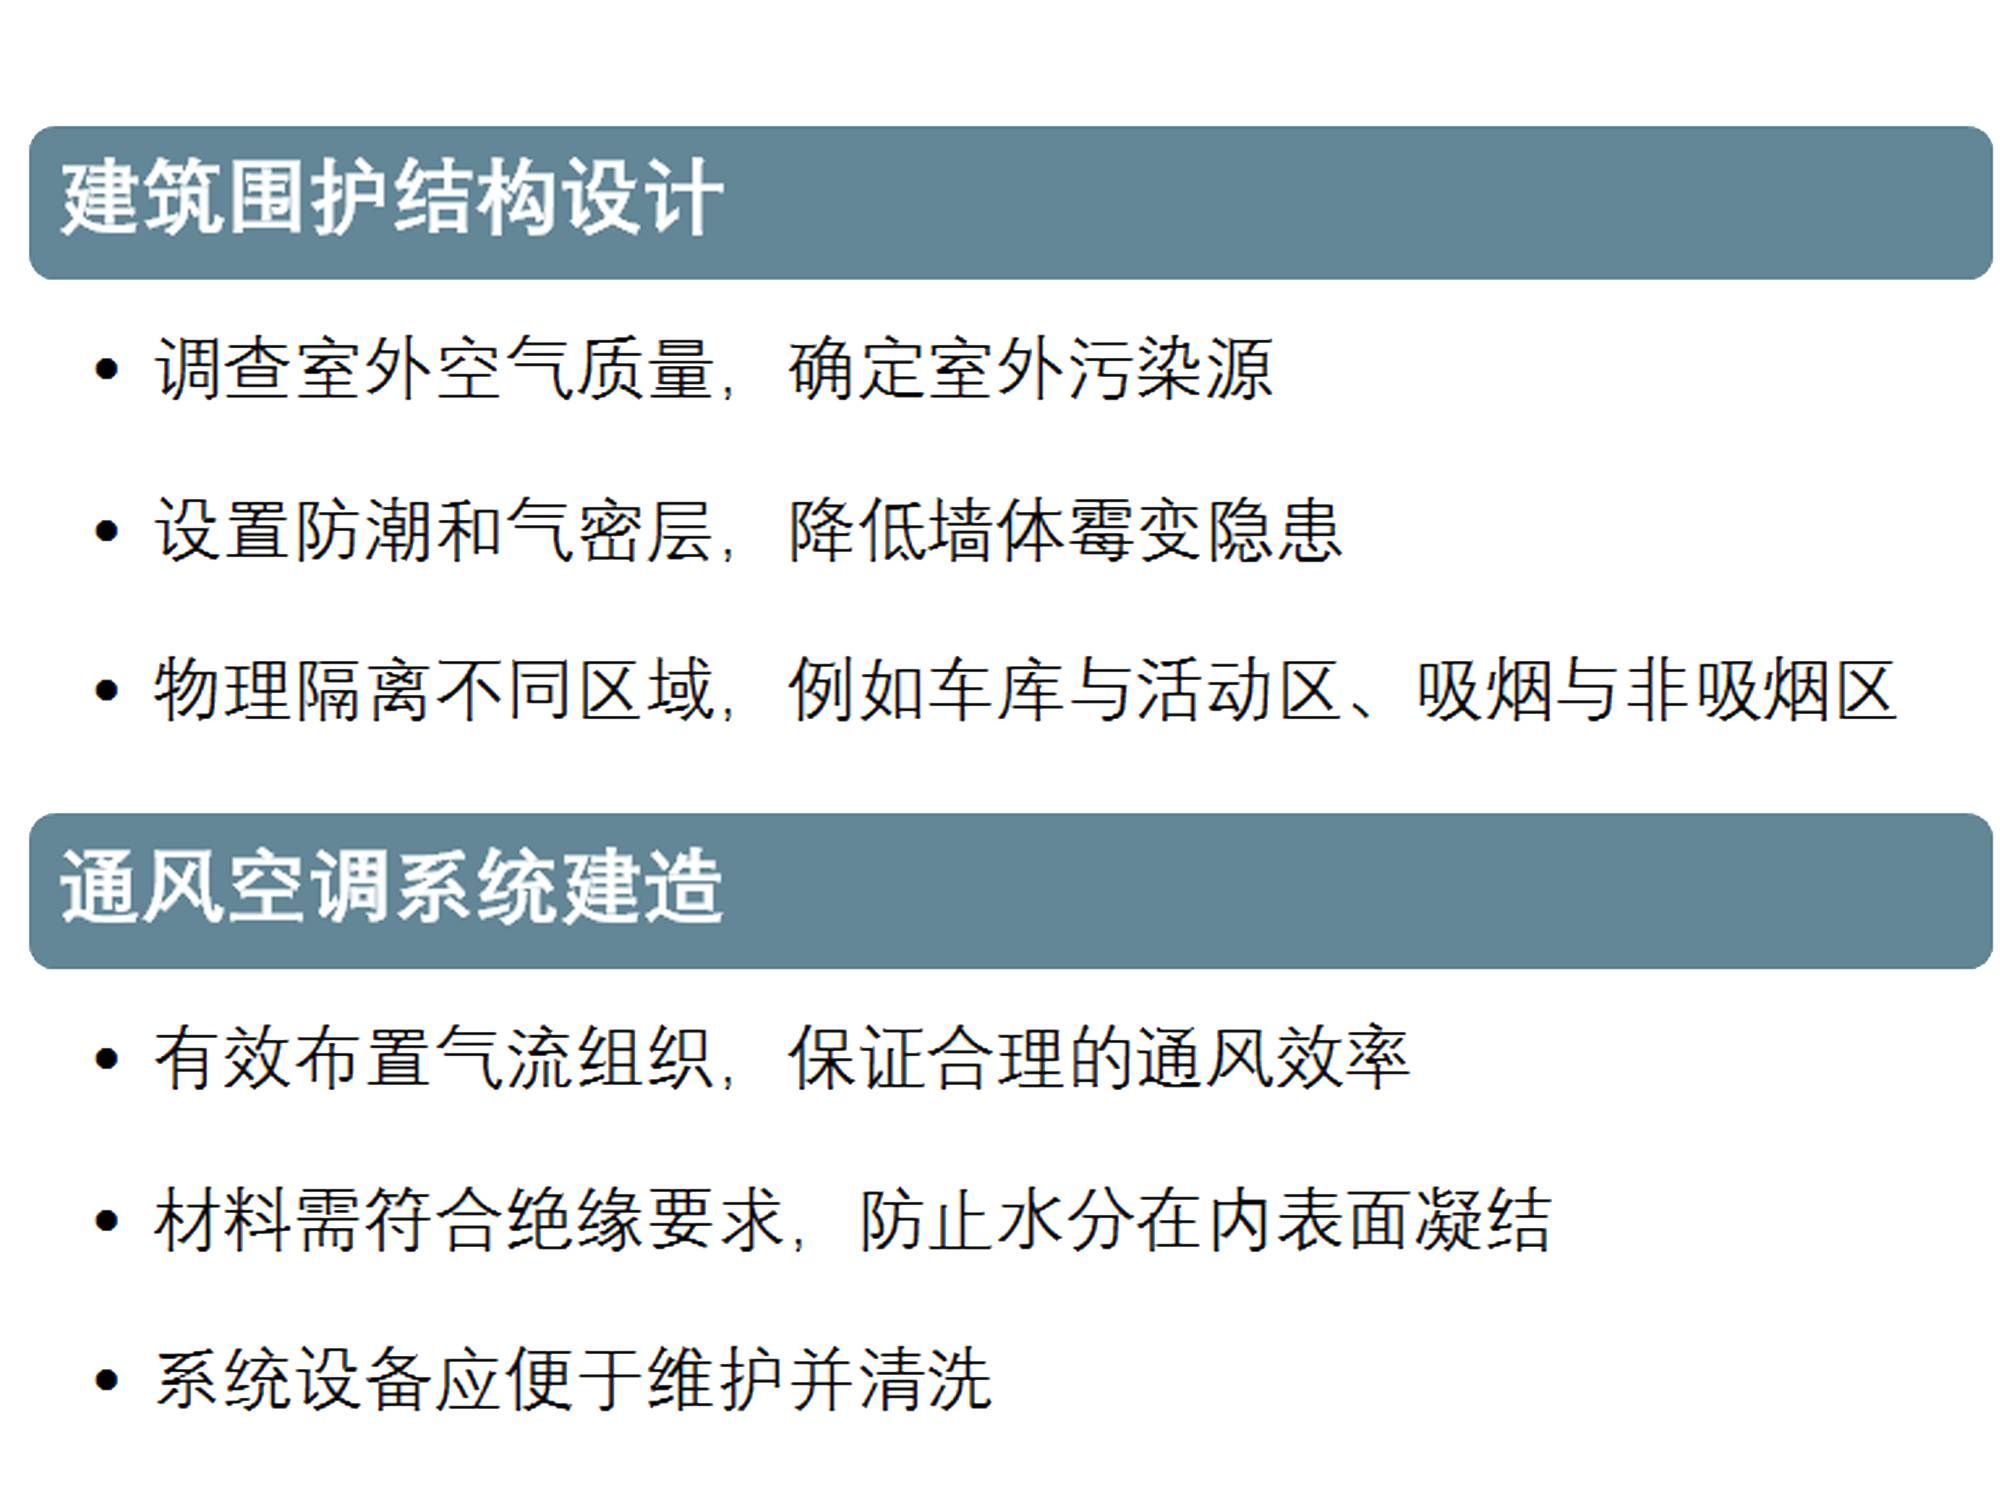 cn-20170928-applications-hvacr-indoor-air-quality01.png